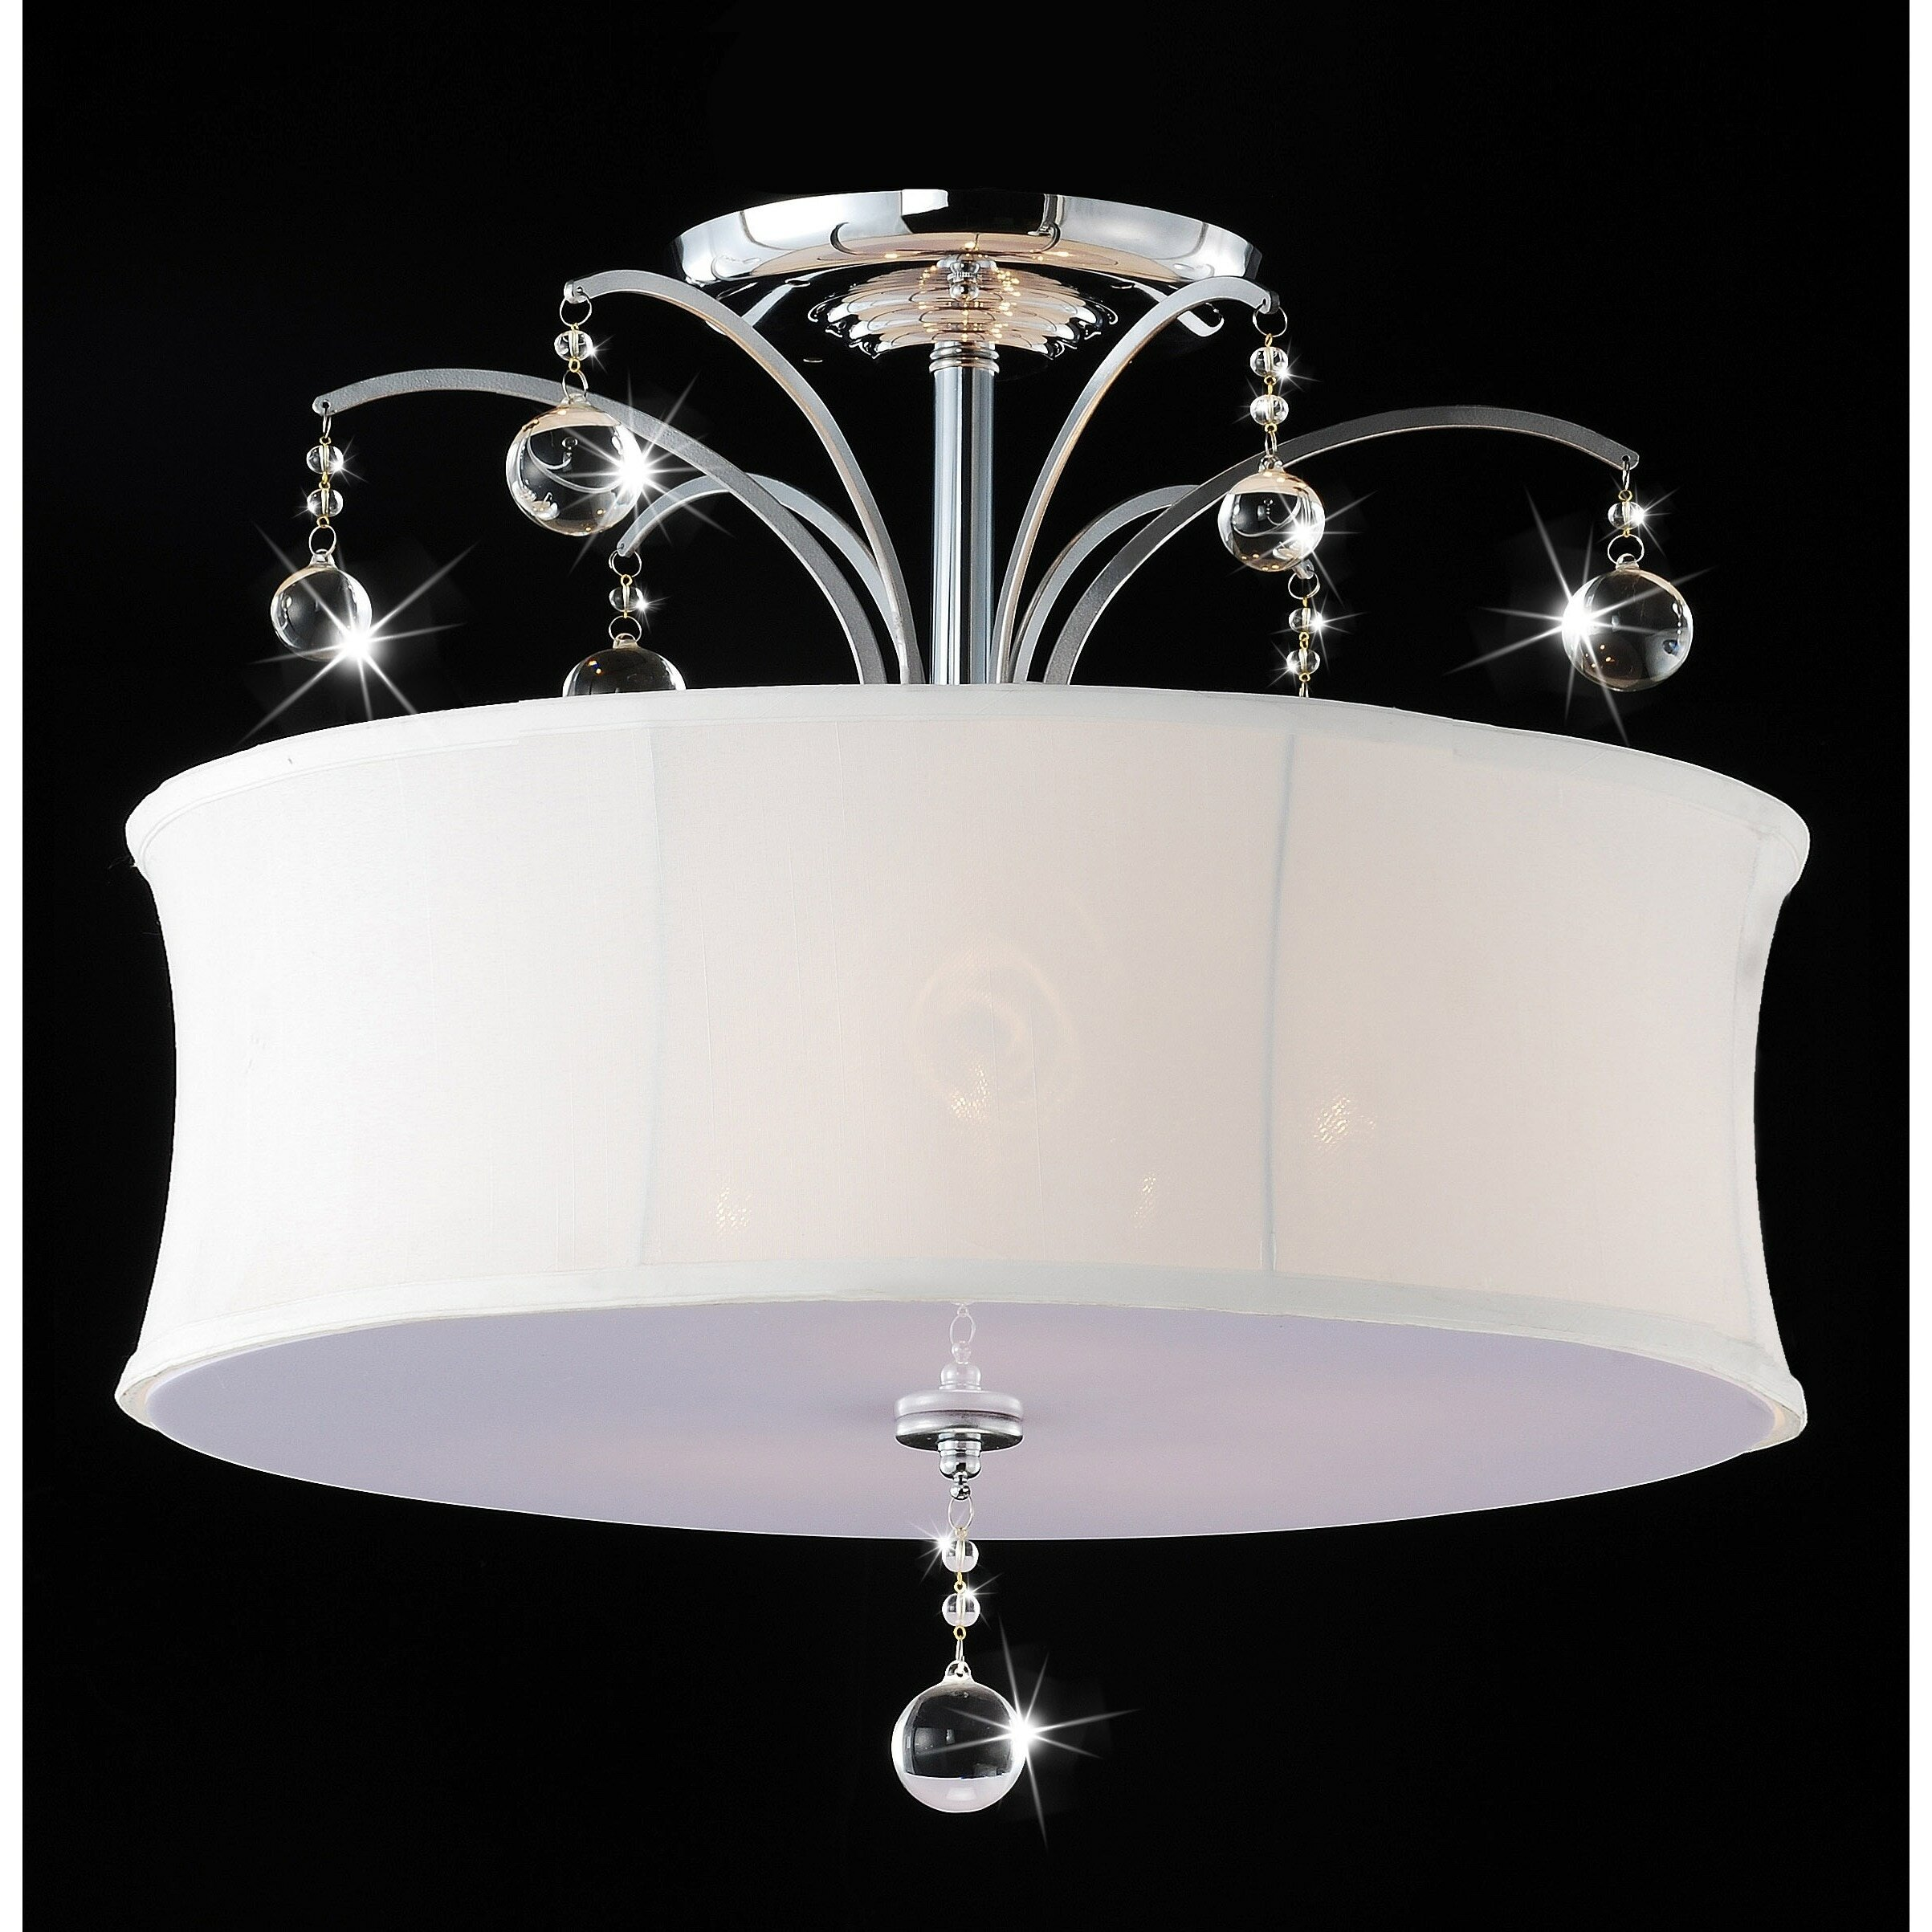 House of hampton mclawhorn 5 light semi flush mount reviews wayfair